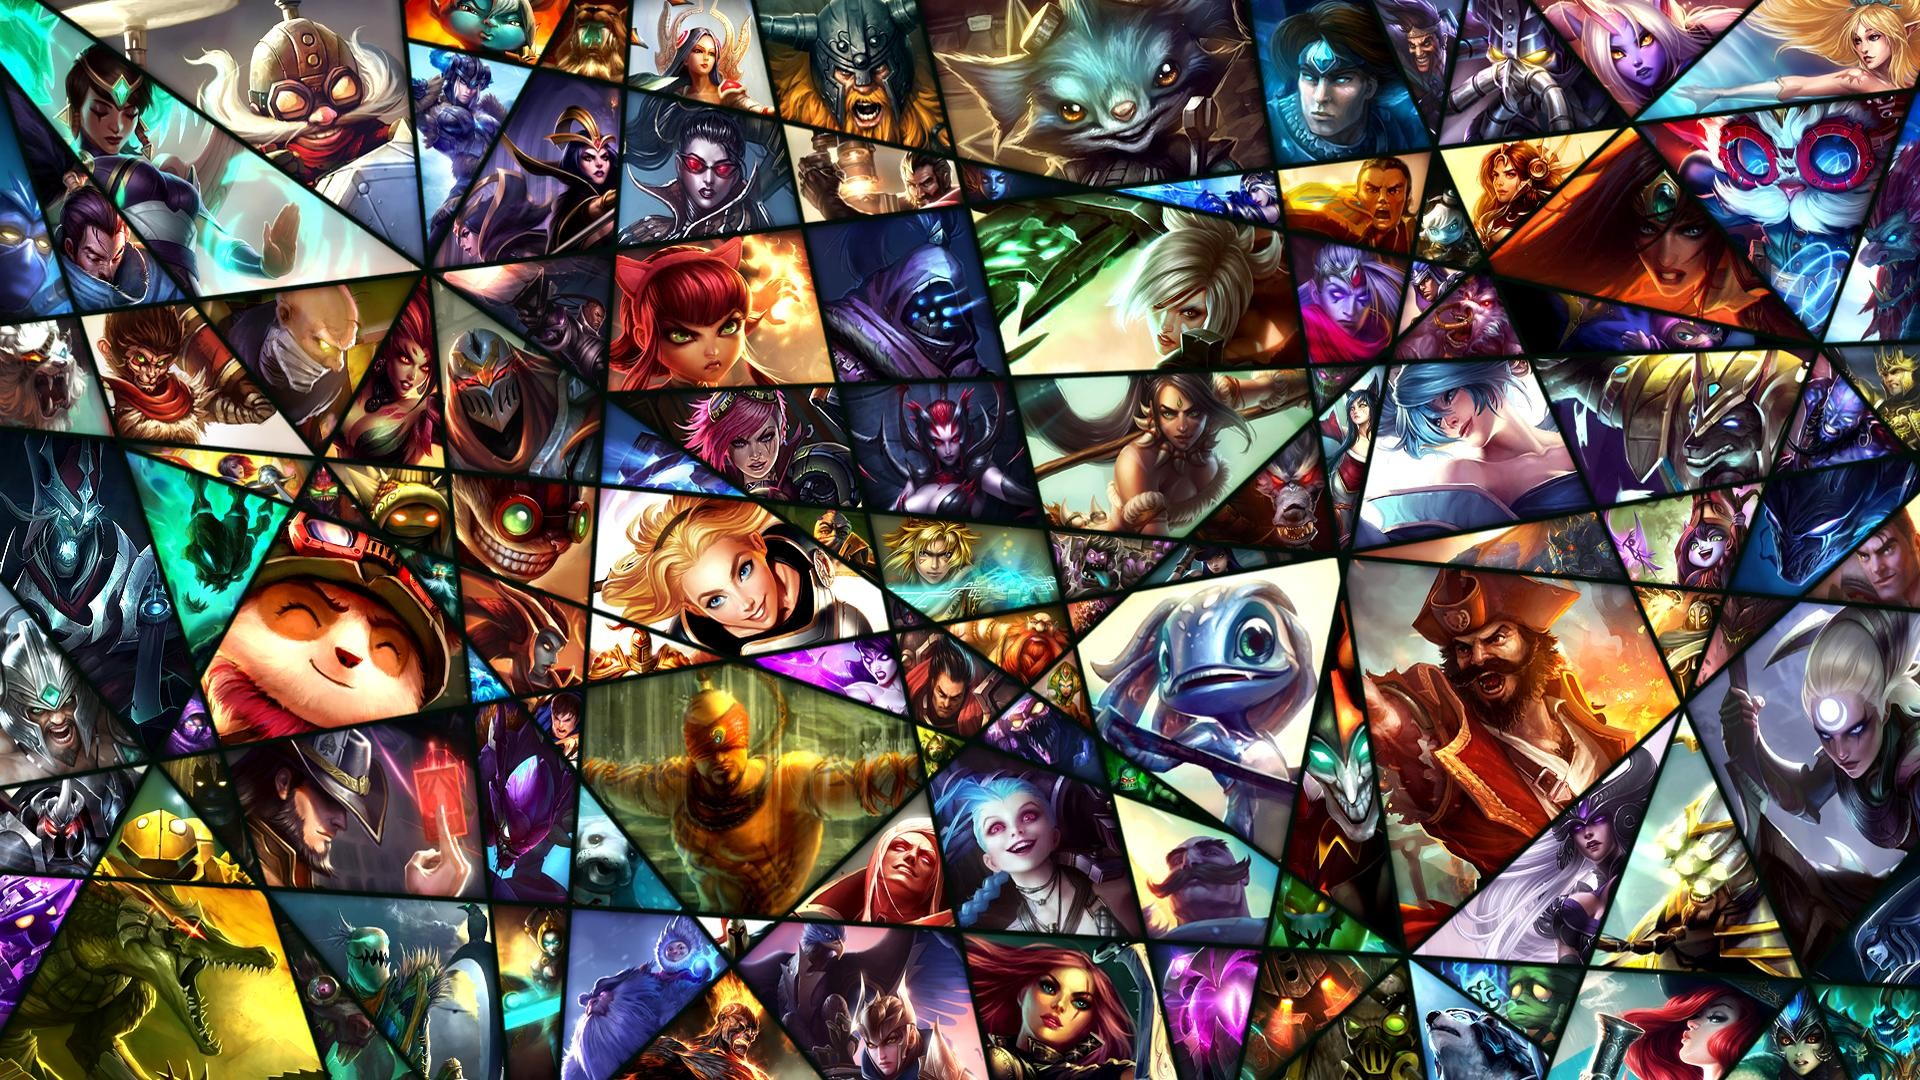 Res: 1920x1080, League of Legends Wallpaper featuring the 119 currently released champions!